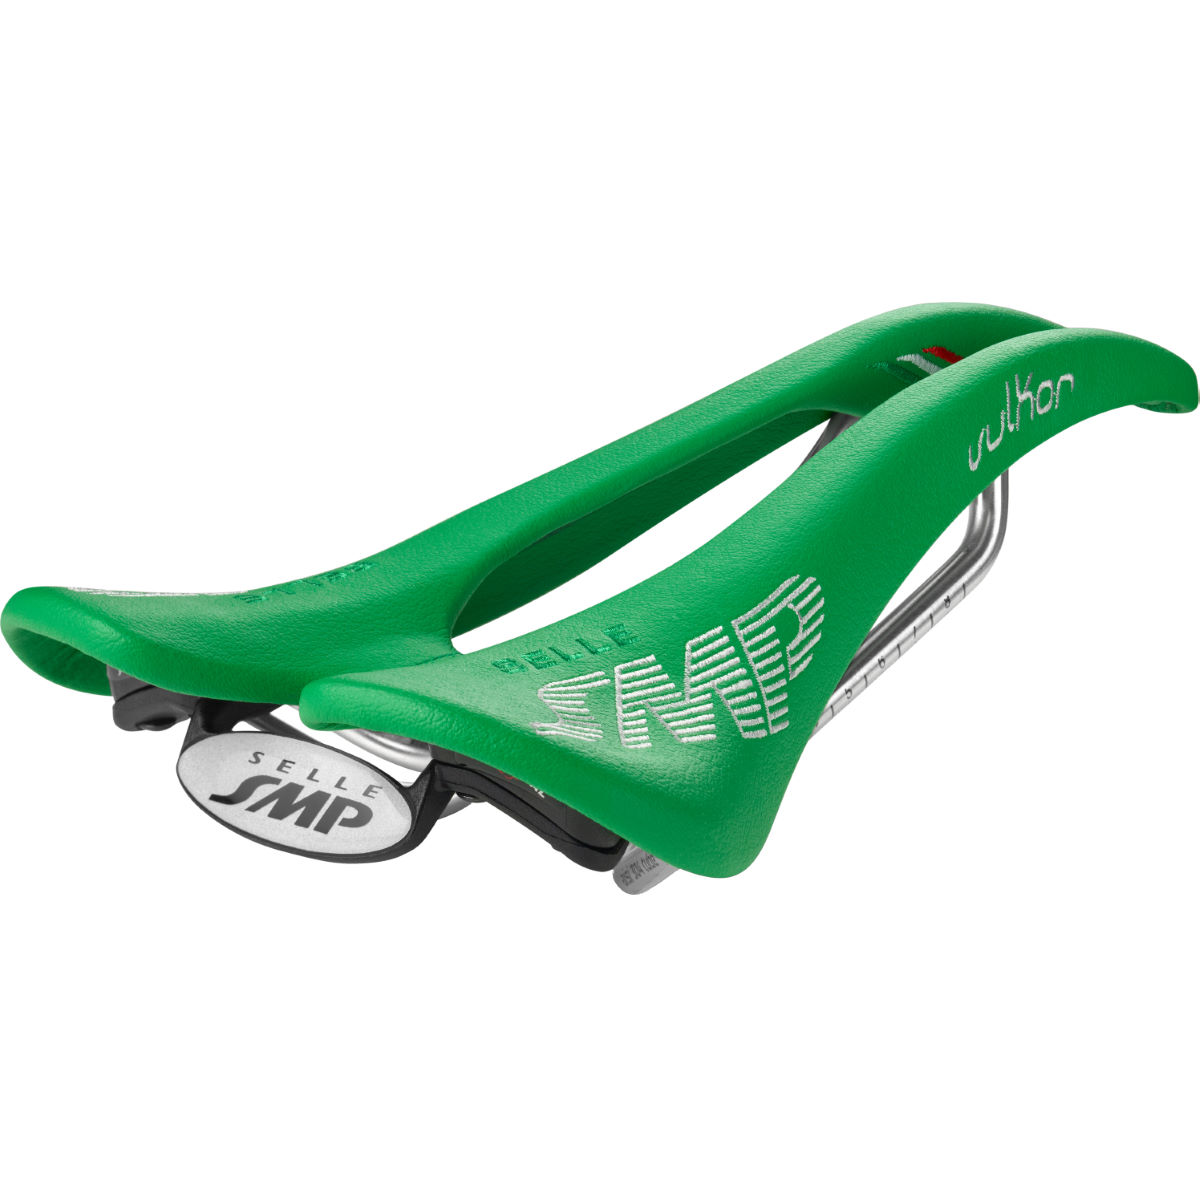 Selle Selle SMP Vulkor - 266 x 136mm Italian Green